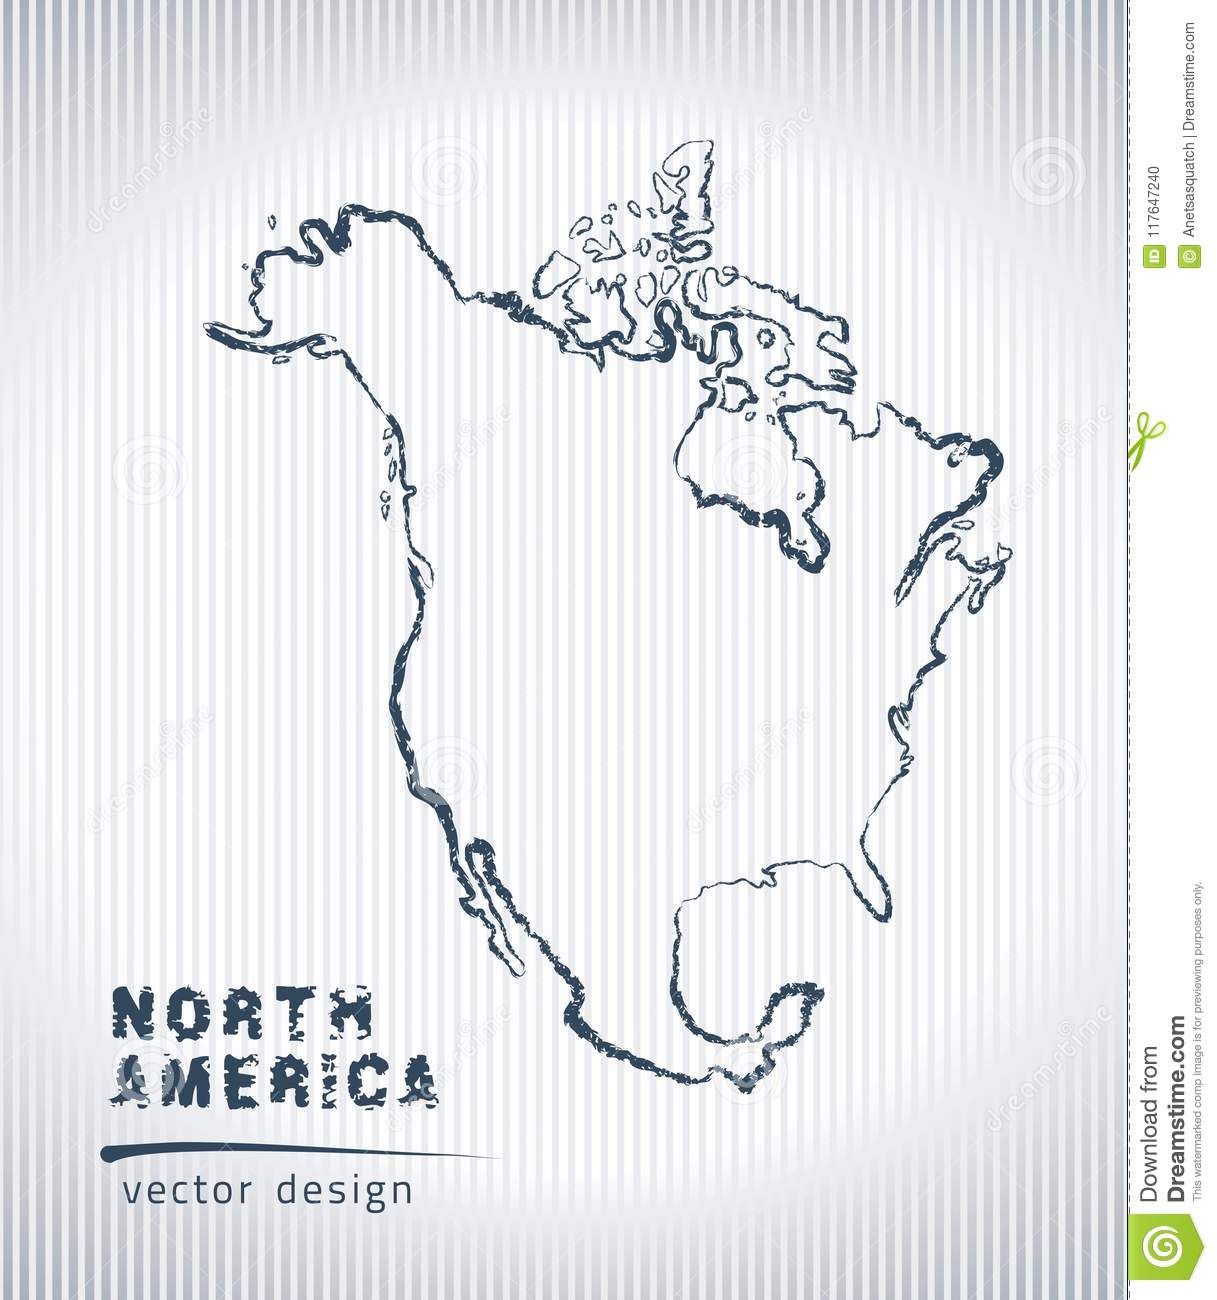 Sketch Map Of North America North America Vector Chalk Drawing Map Isolated On A White